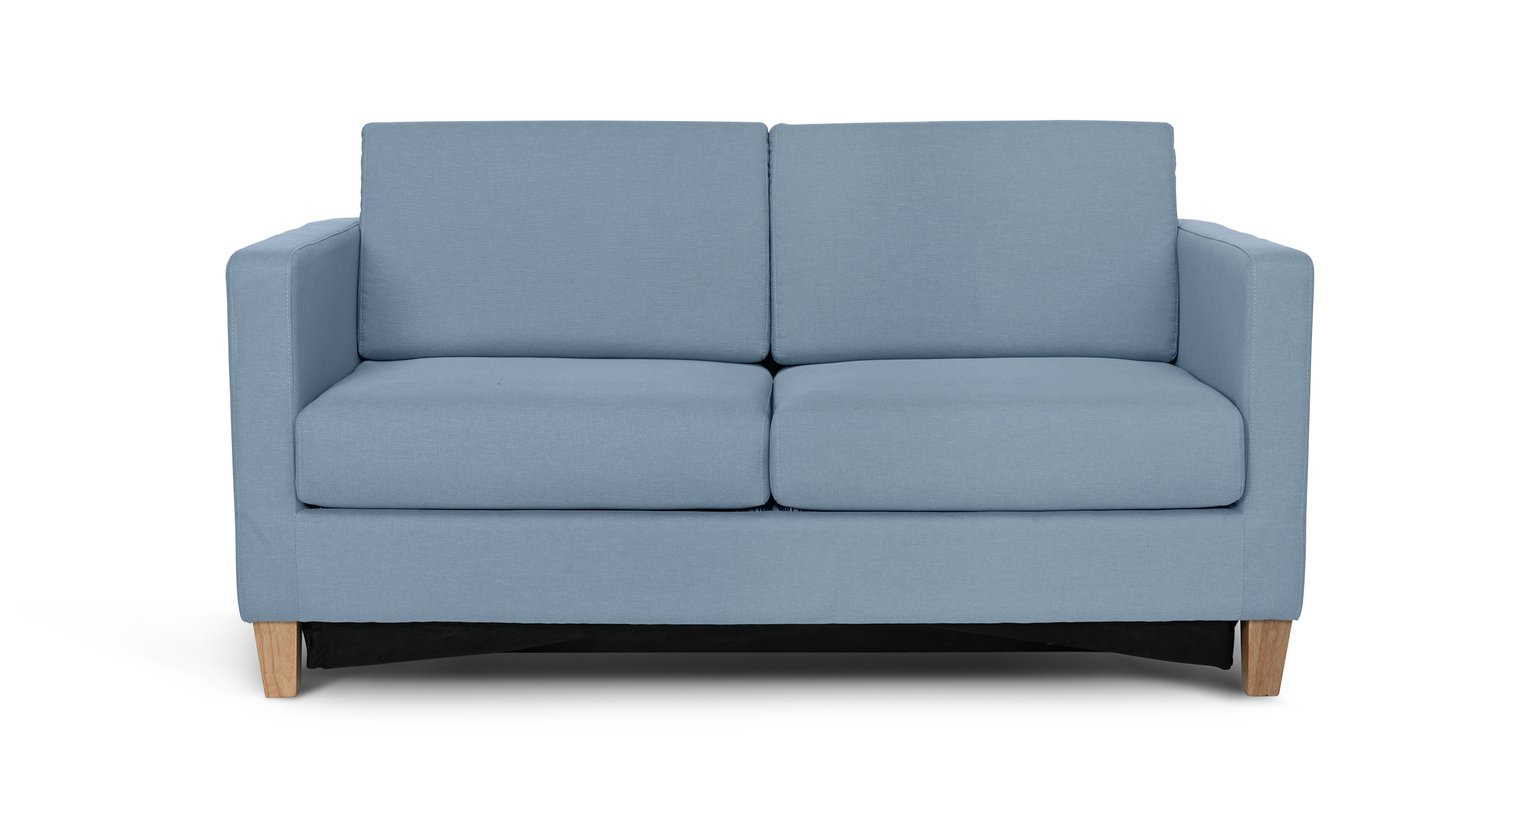 Argos Home Rosie 2 Seater Fabric Sofa Bed - Pale Blue